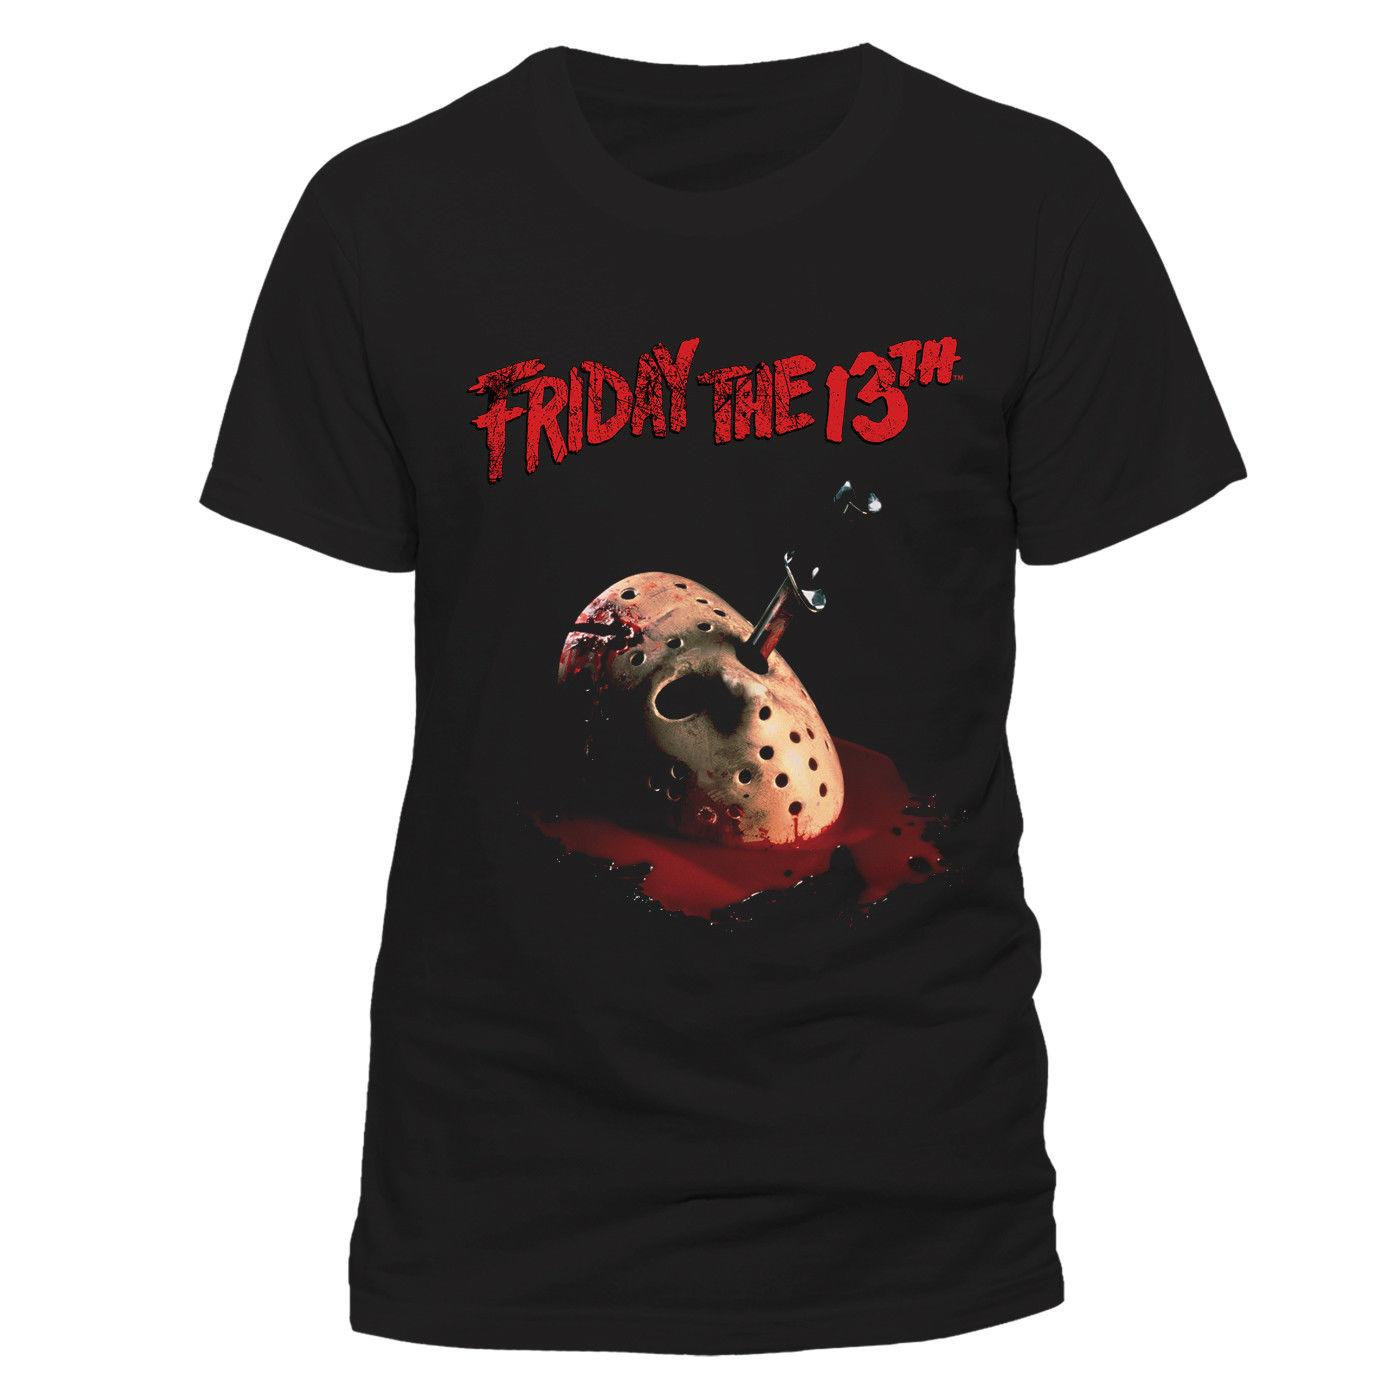 OFFICIAL FRIDAY THE 13TH JASON VOORHEES HOCKEY MASK DAGGER BLACK T SHIRT  NEW Men S Clothing T Shirts Short Sleeve Male Tee Shirt Online Shopping 24  Hour Tee ... 2856b00c76